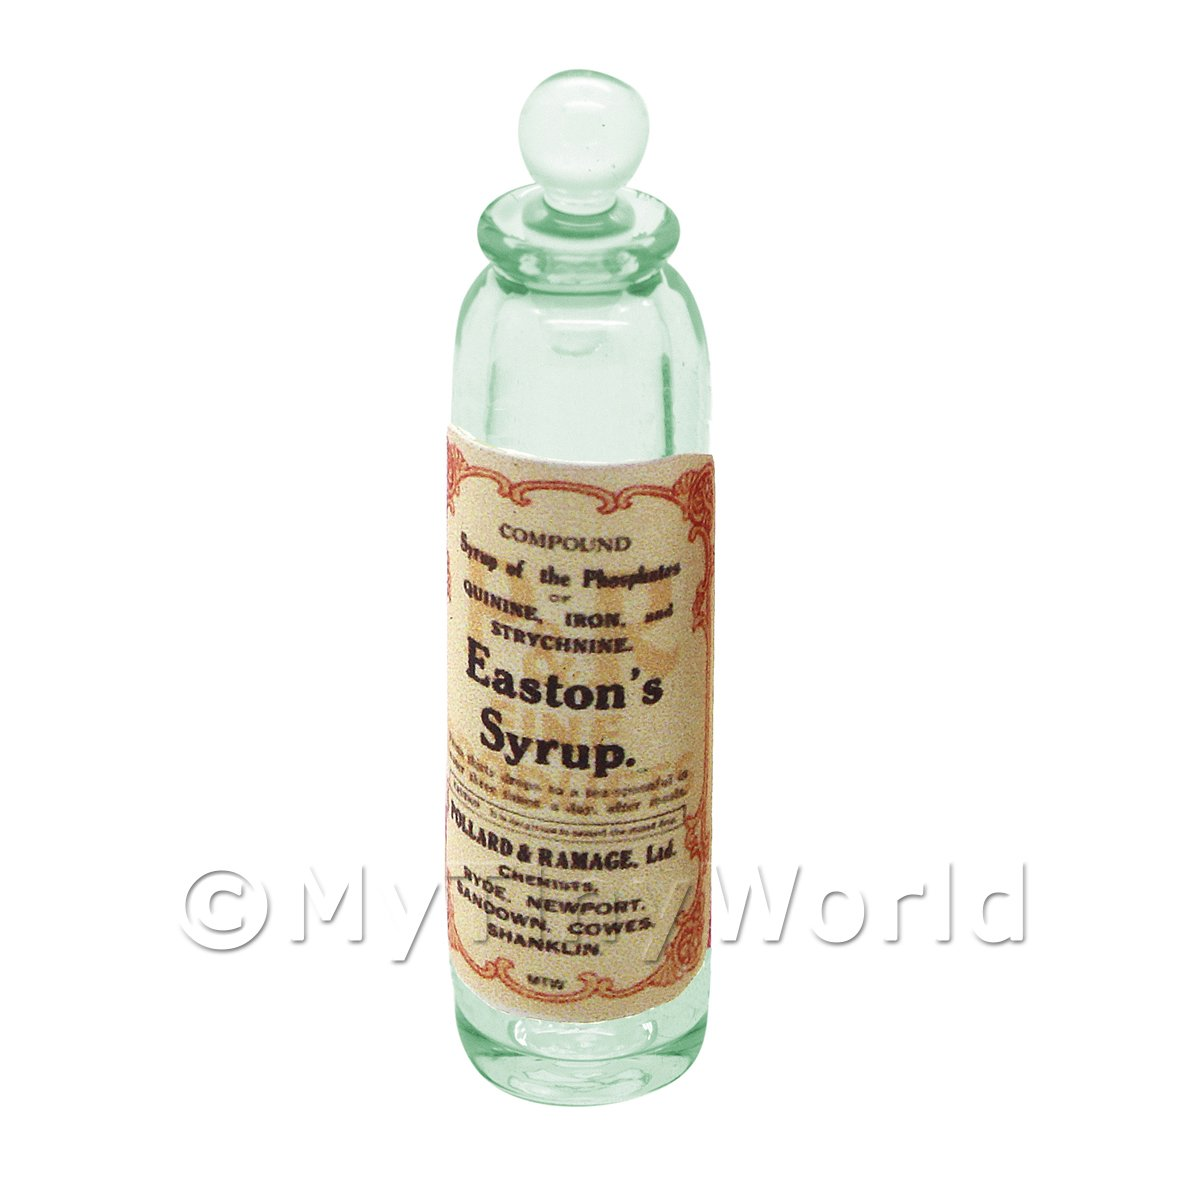 Miniature Phosphates of Quinine Green Glass Apothecary Bottle